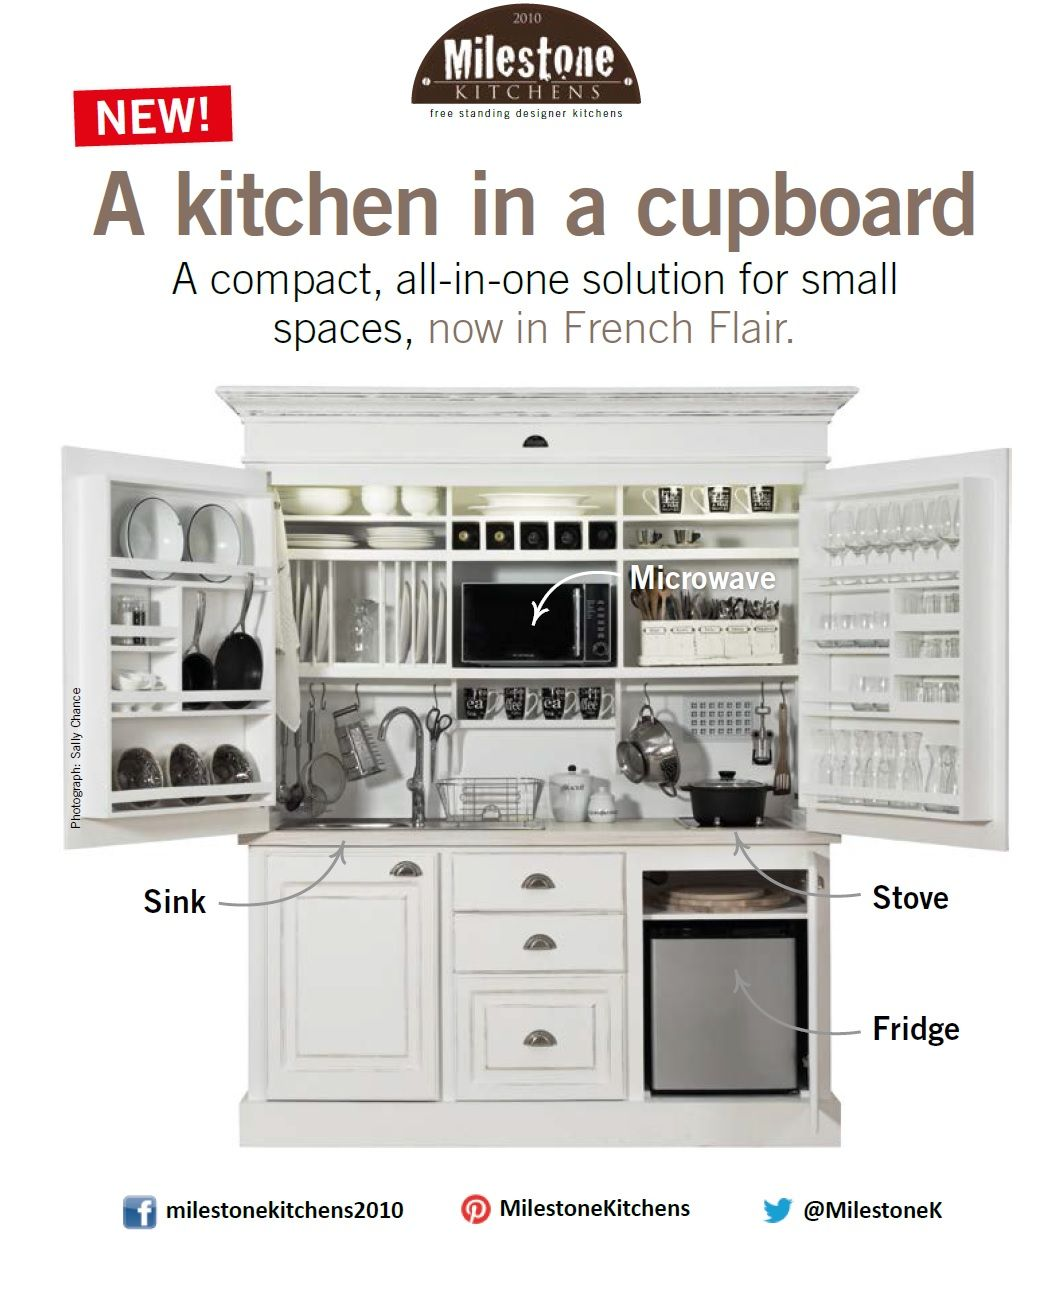 Milestone Kitchens Has A Special Buy An Entire Kitchen And A Cupboard For The Price Of One Kitchen Unit Designs Kitchen Units Kitchen Utensils Store